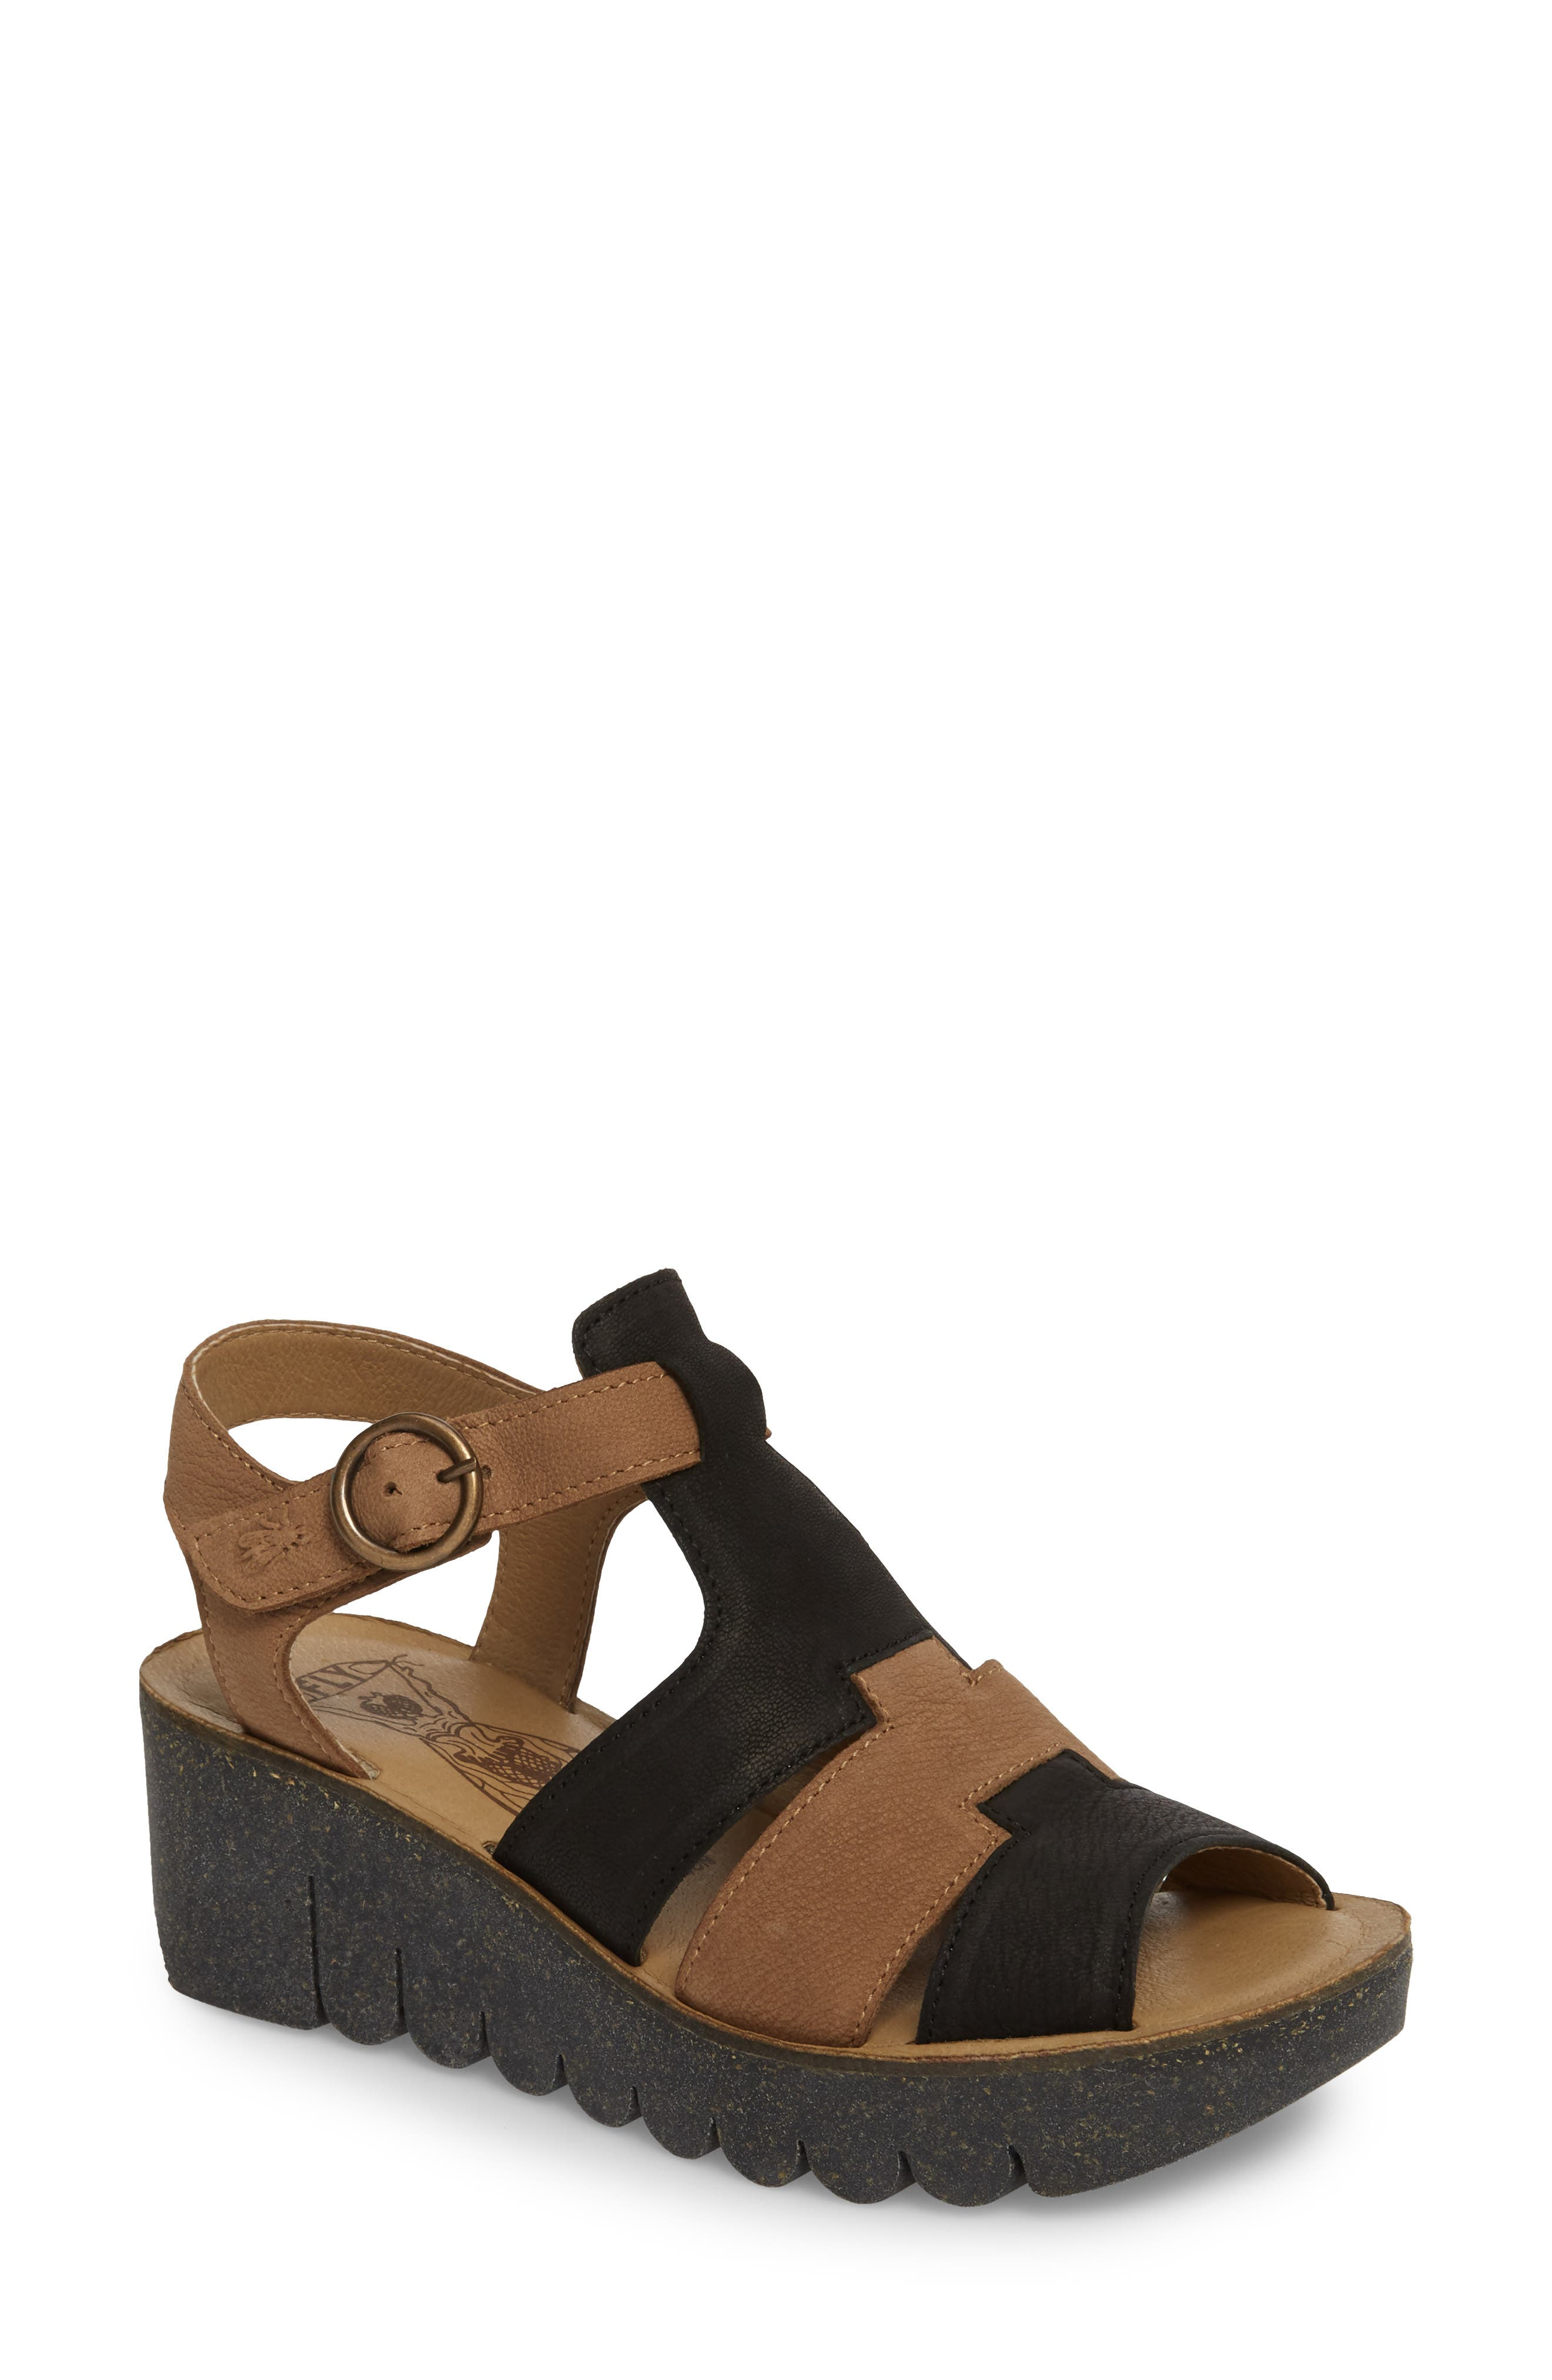 Yuni Wedge Sandal,                             Main thumbnail 1, color,                             Black/ Sand Cupido Leather